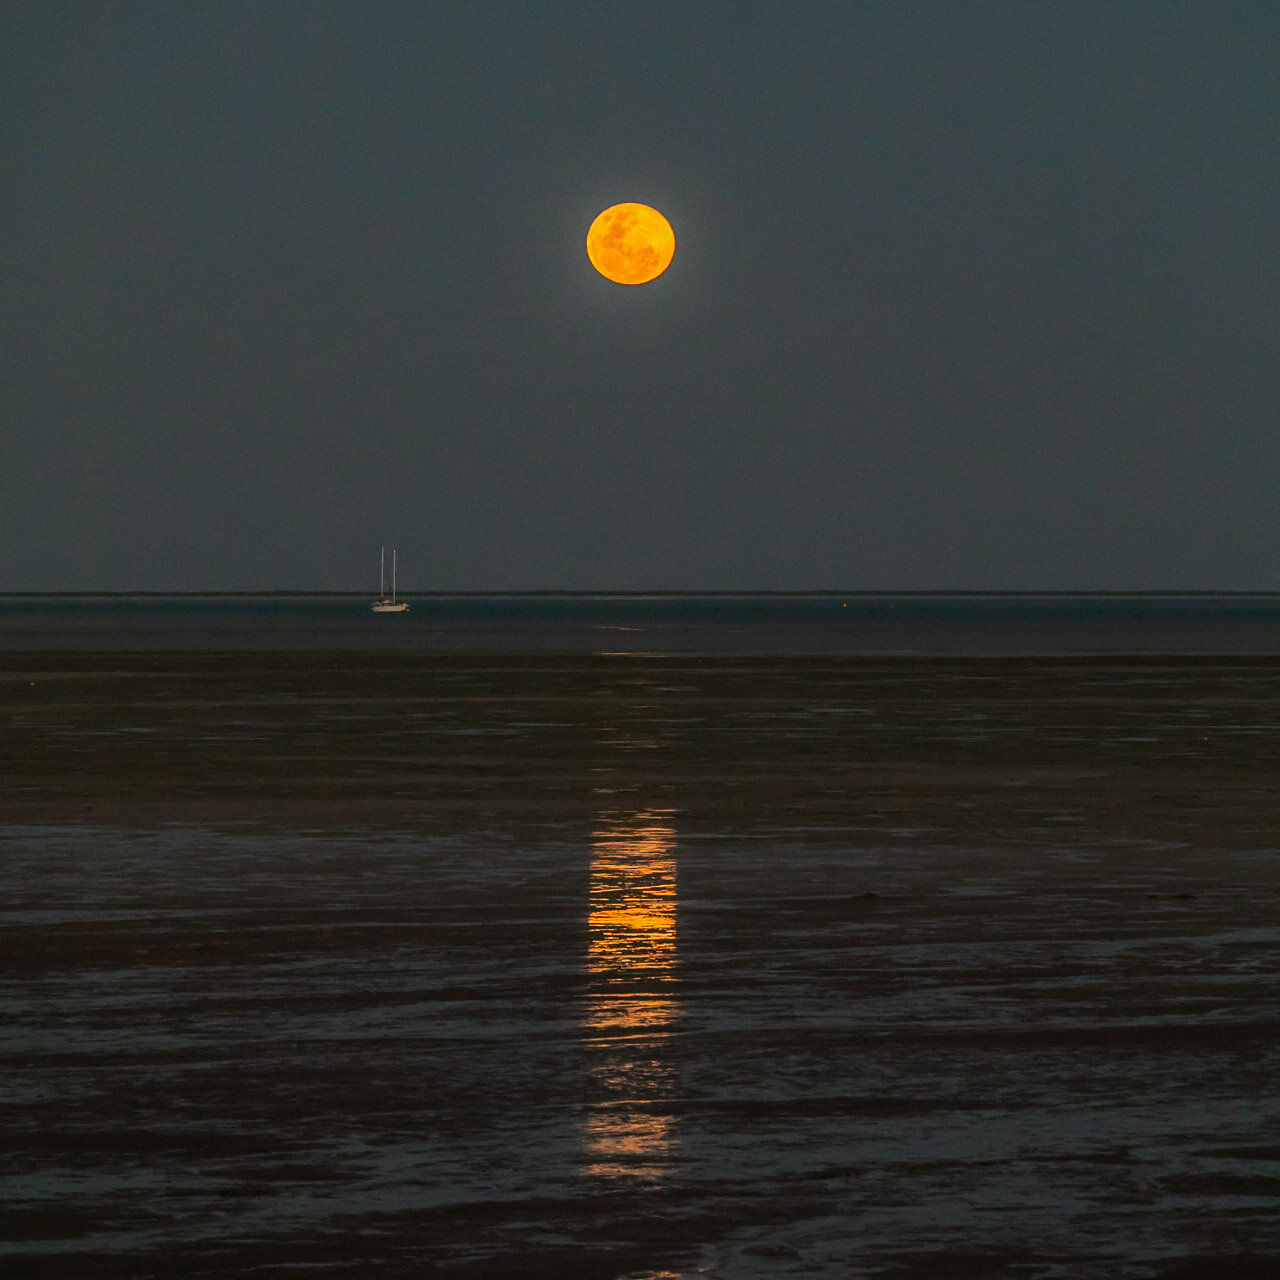 The Staircase to the Moon viewed from Town Beach in Broome